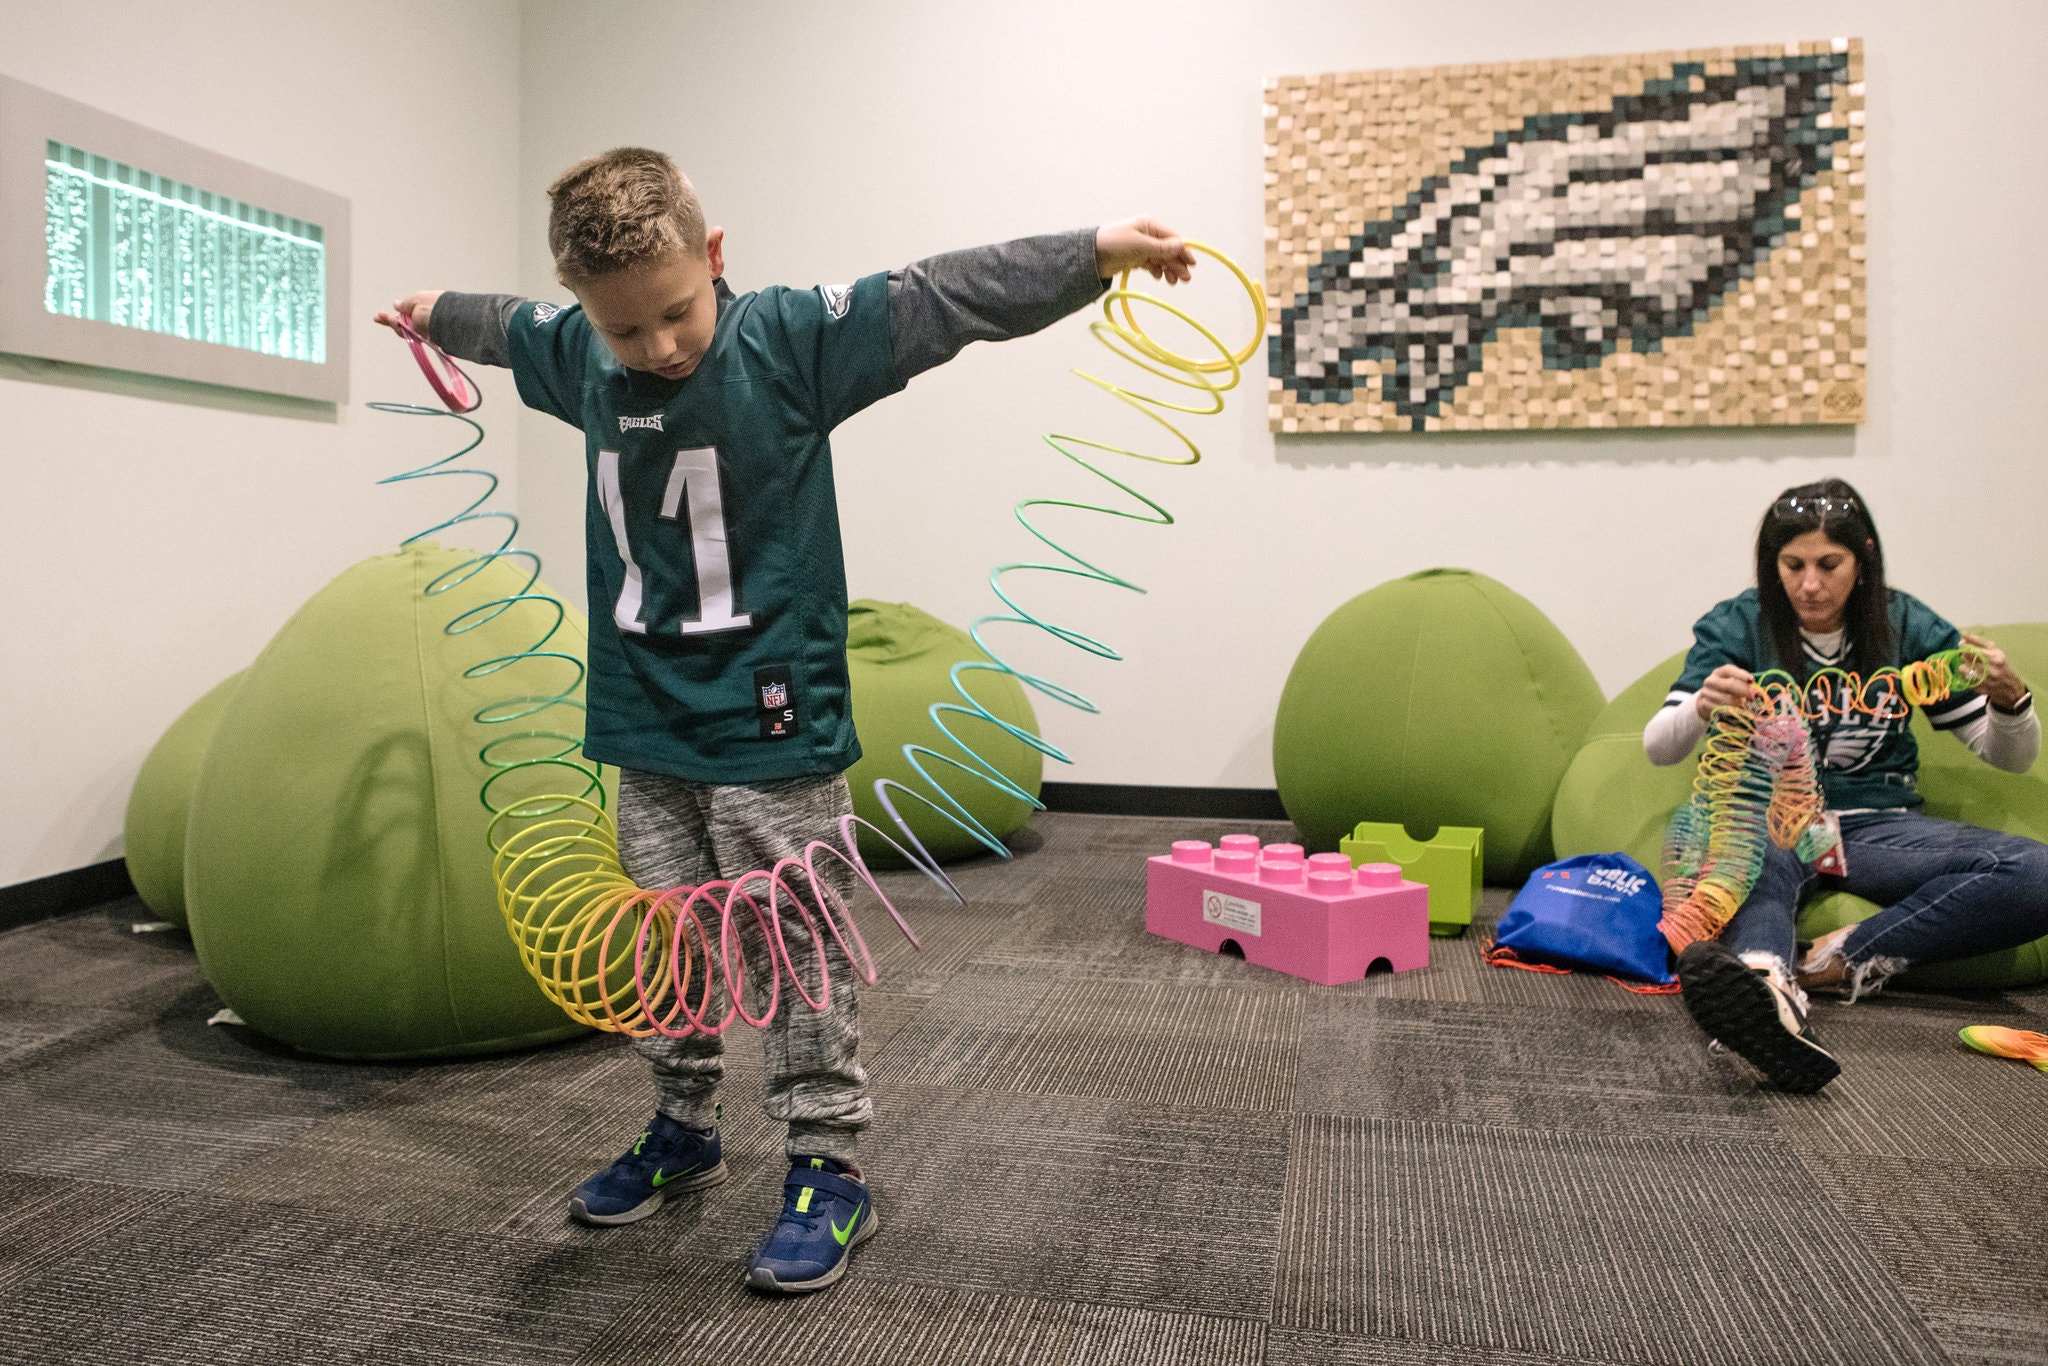 NY Times: Philadelphia Eagles Among Teams Making Their Stadiums Friendlier To Fans On Autism Spectrum